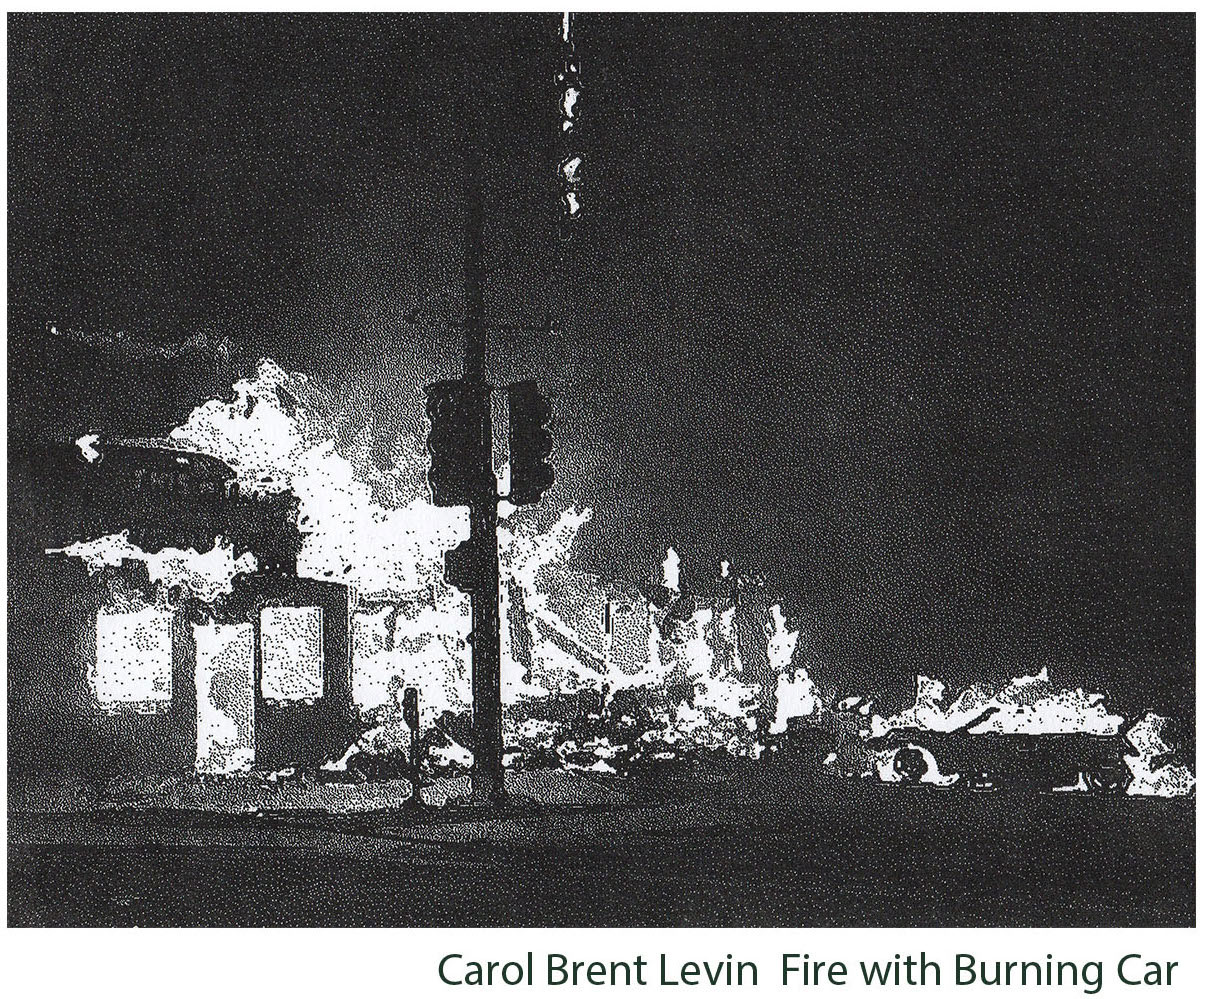 Brent-Levin-Carol_Fire-With-Burning-Car